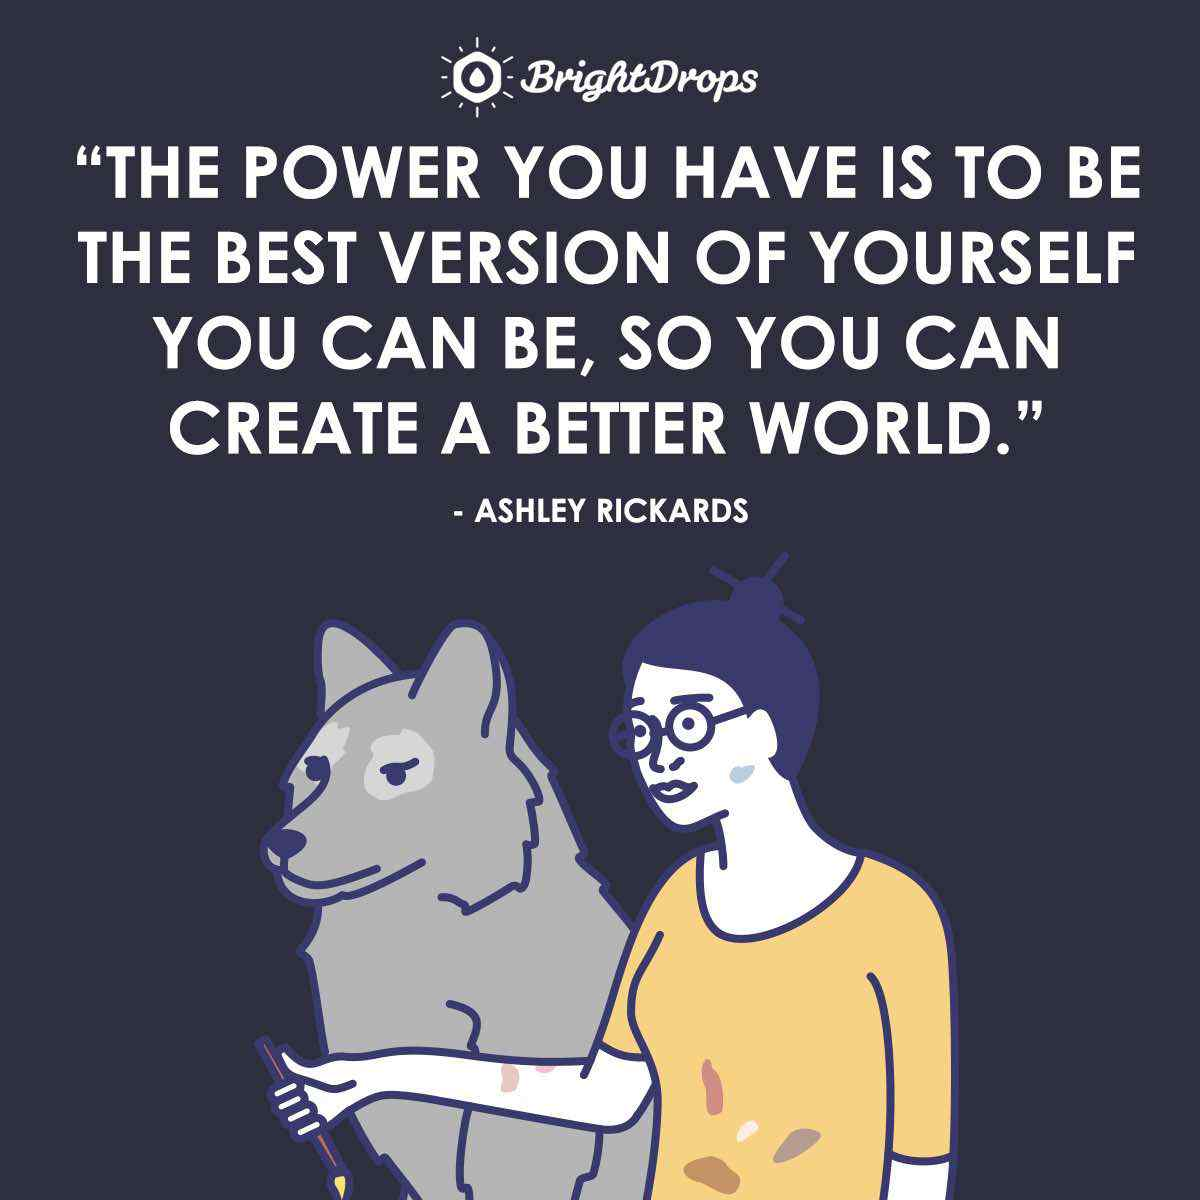 """The power you have is to be the best version of yourself you can be, so you can create a better world."" ~ Ashley Rickards"